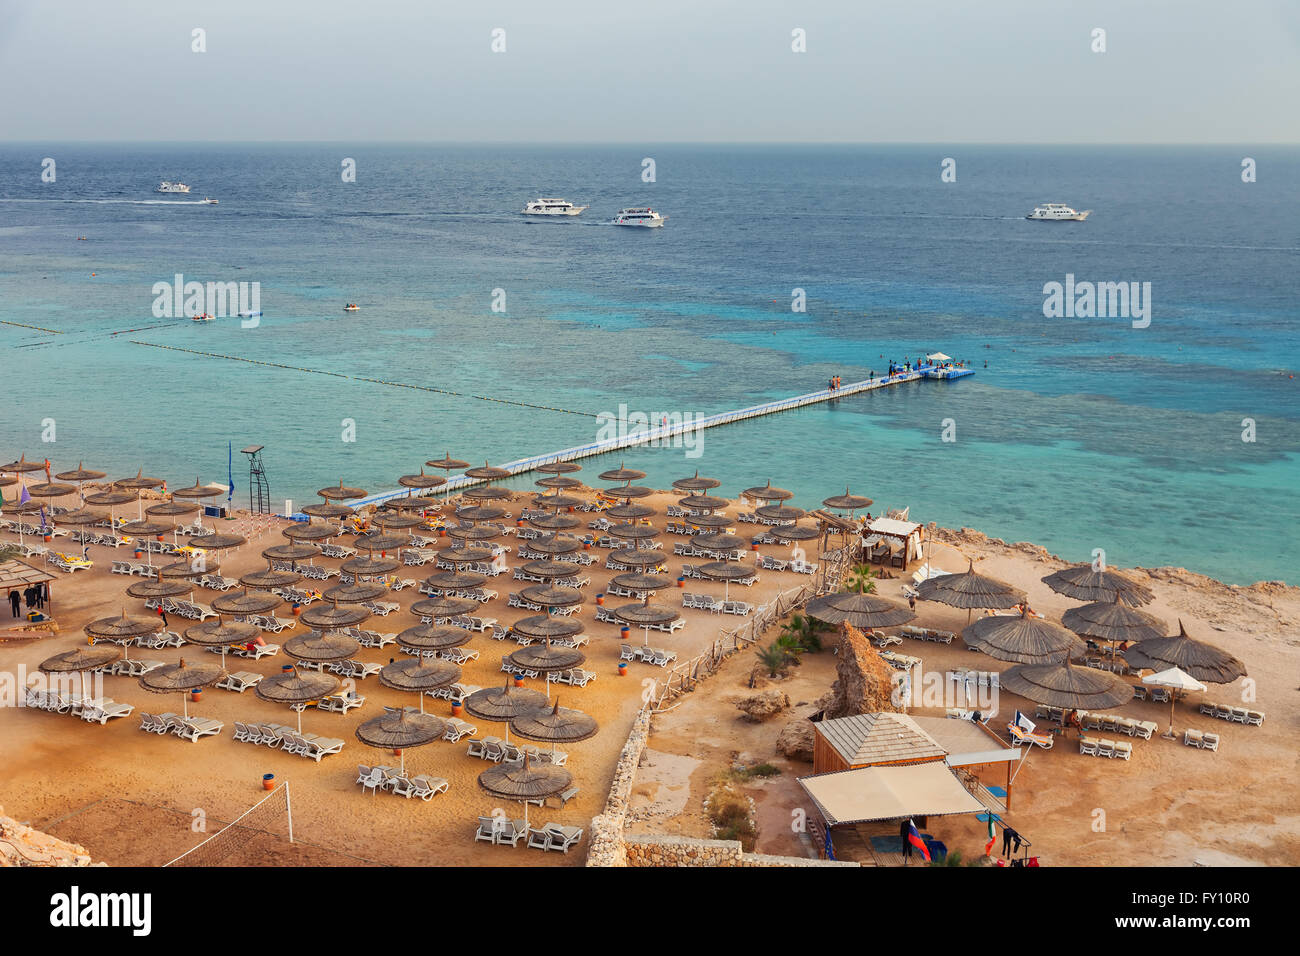 Red Sea coast in Egypt, Sharm el sheikh - Stock Image